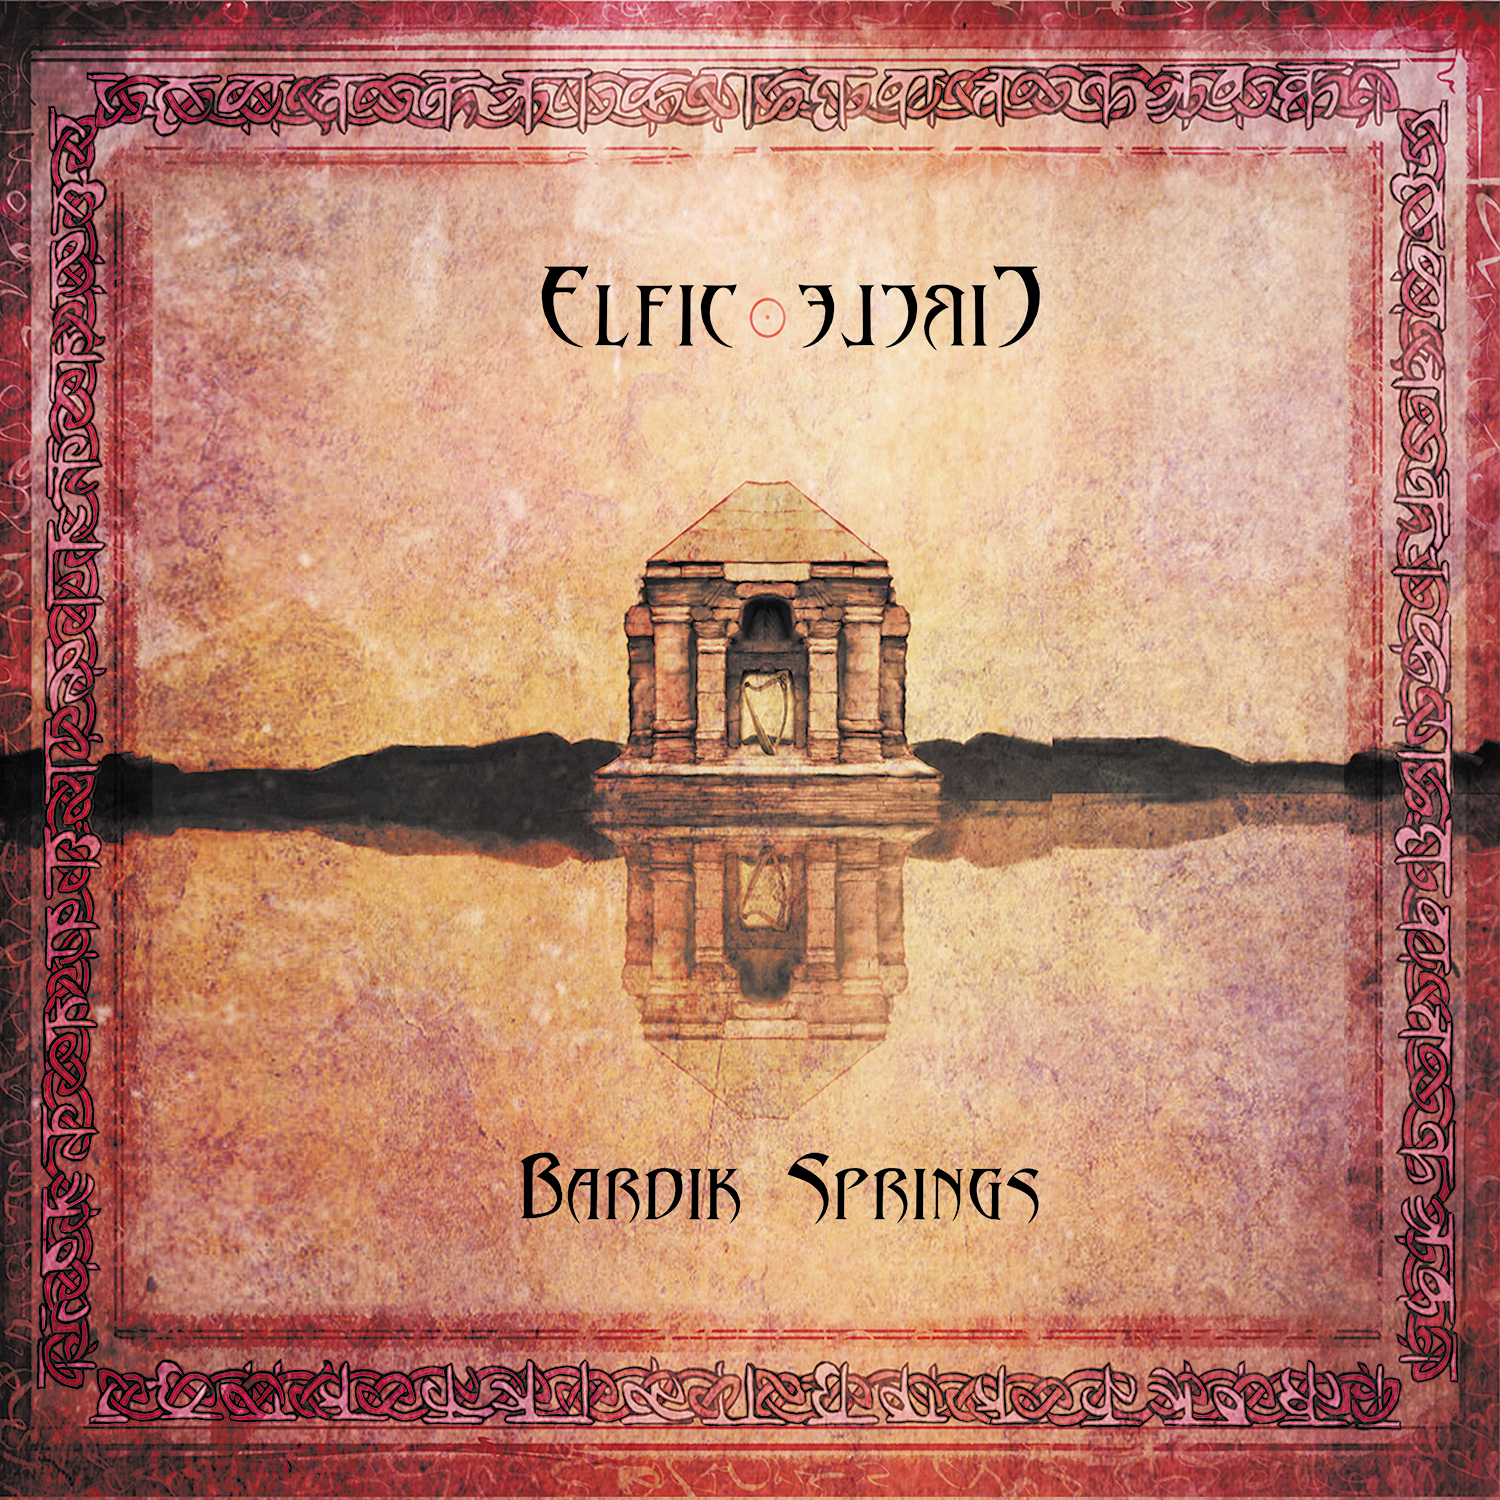 Elfic Circle – Bardik Springs